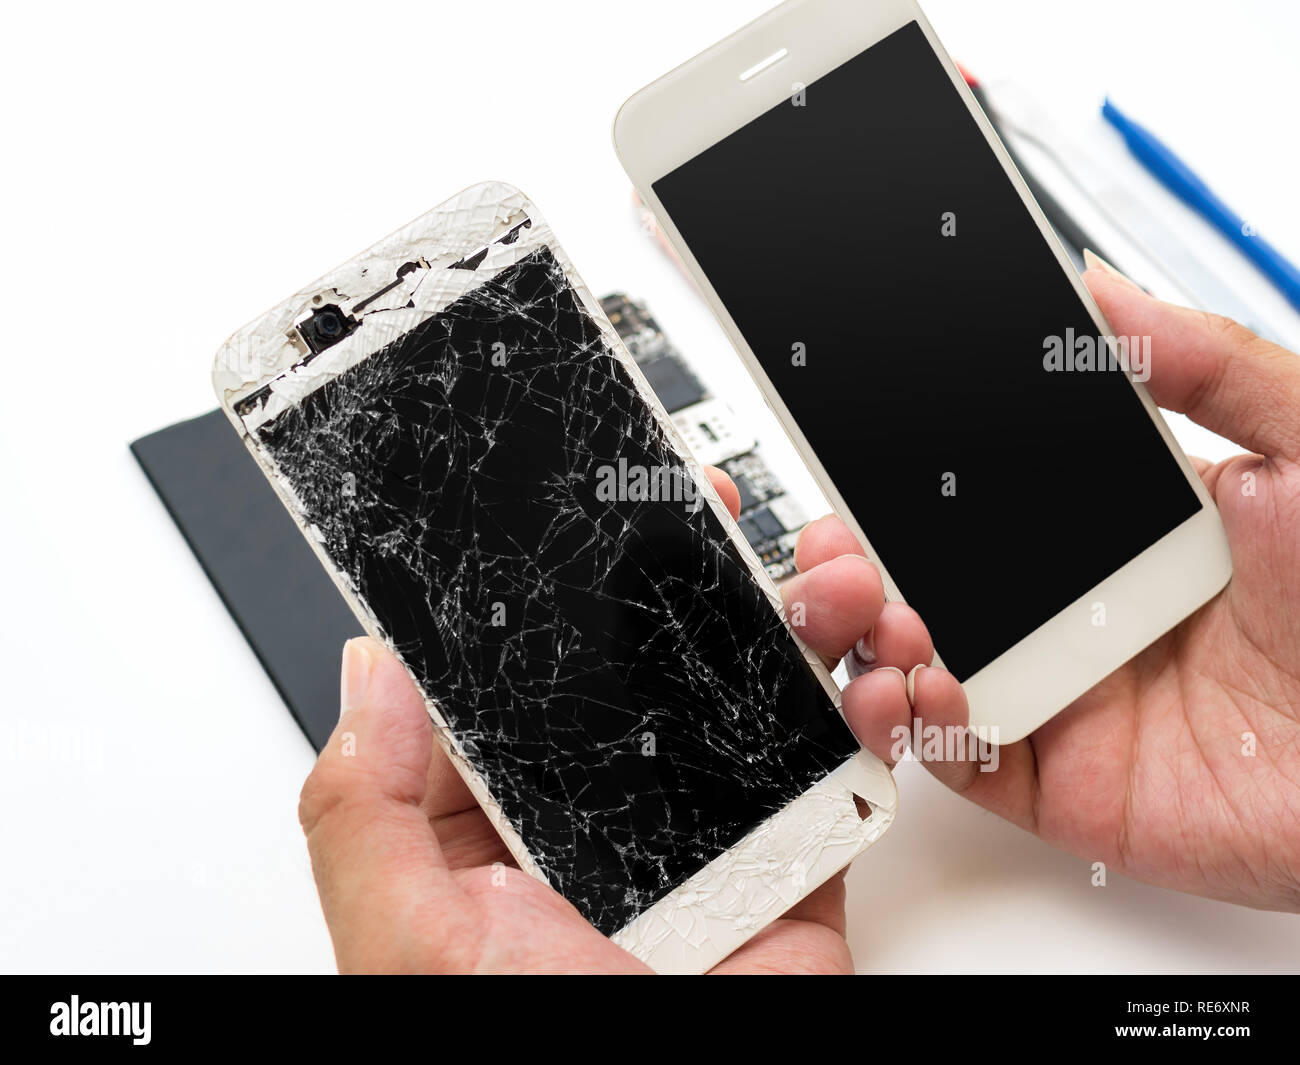 Close-up of cracked smartphone screen compare with new screen in technician hand on blurred smartphone component background - Stock Image